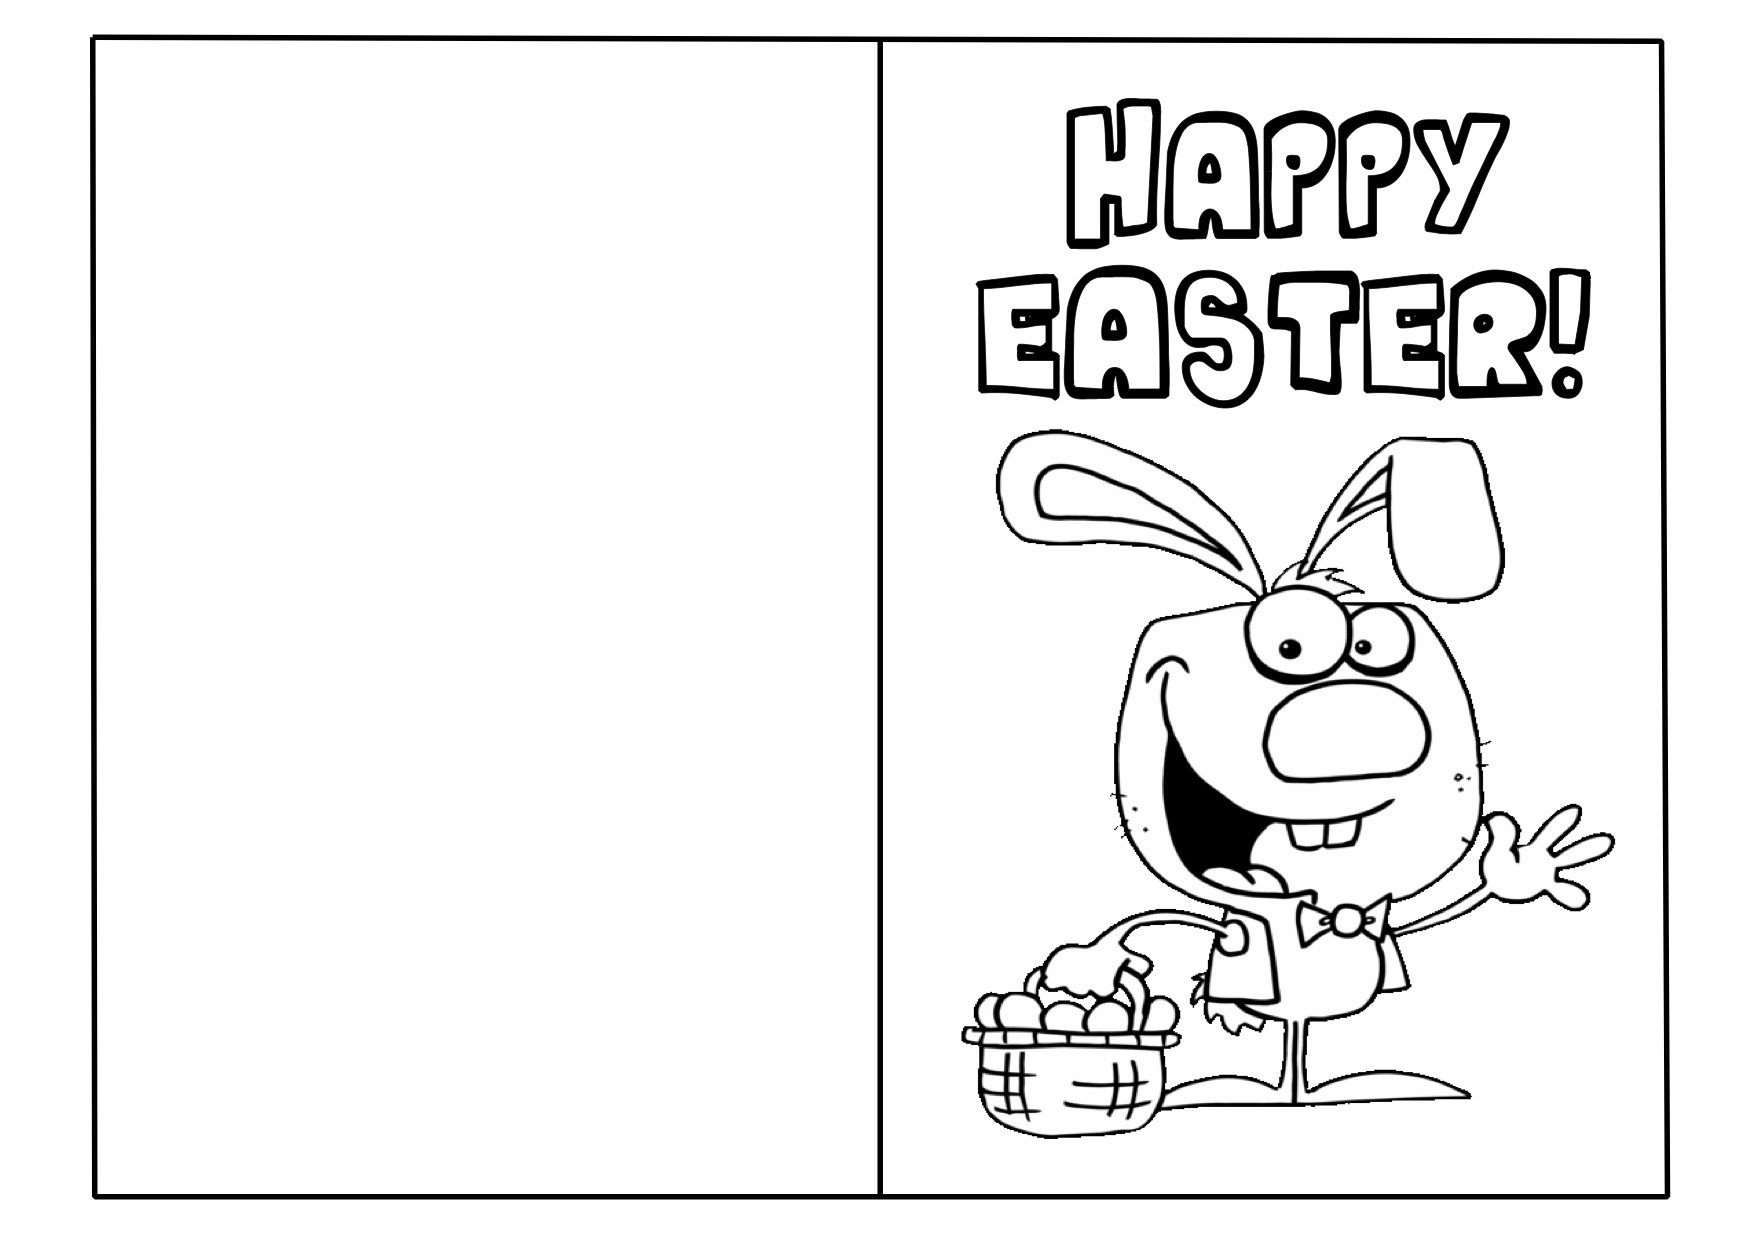 Free Printable Easter Cards Templates – Hd Easter Images - Free Printable Easter Cards For Grandchildren